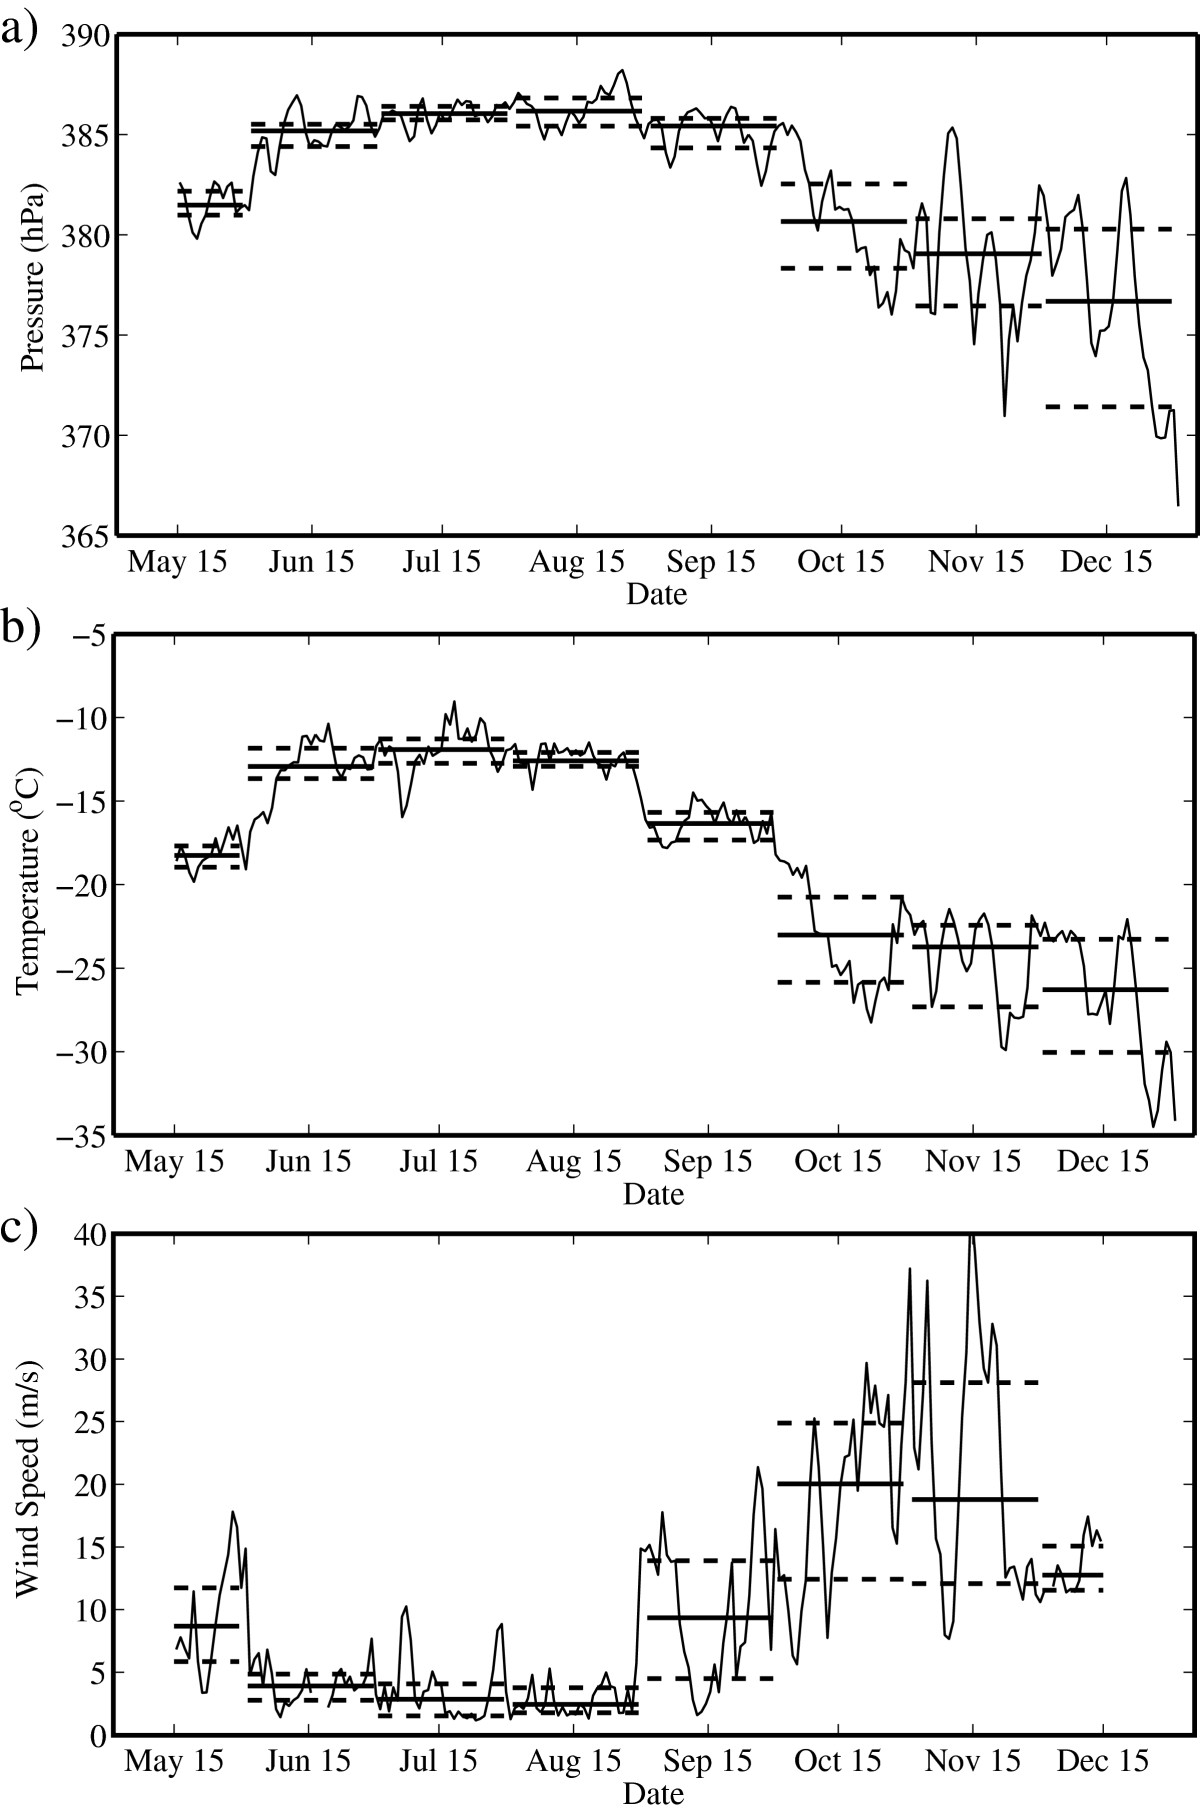 http://static-content.springer.com/image/art%3A10.1186%2F2046-7648-1-2/MediaObjects/13728_2012_Article_2_Fig2_HTML.jpg